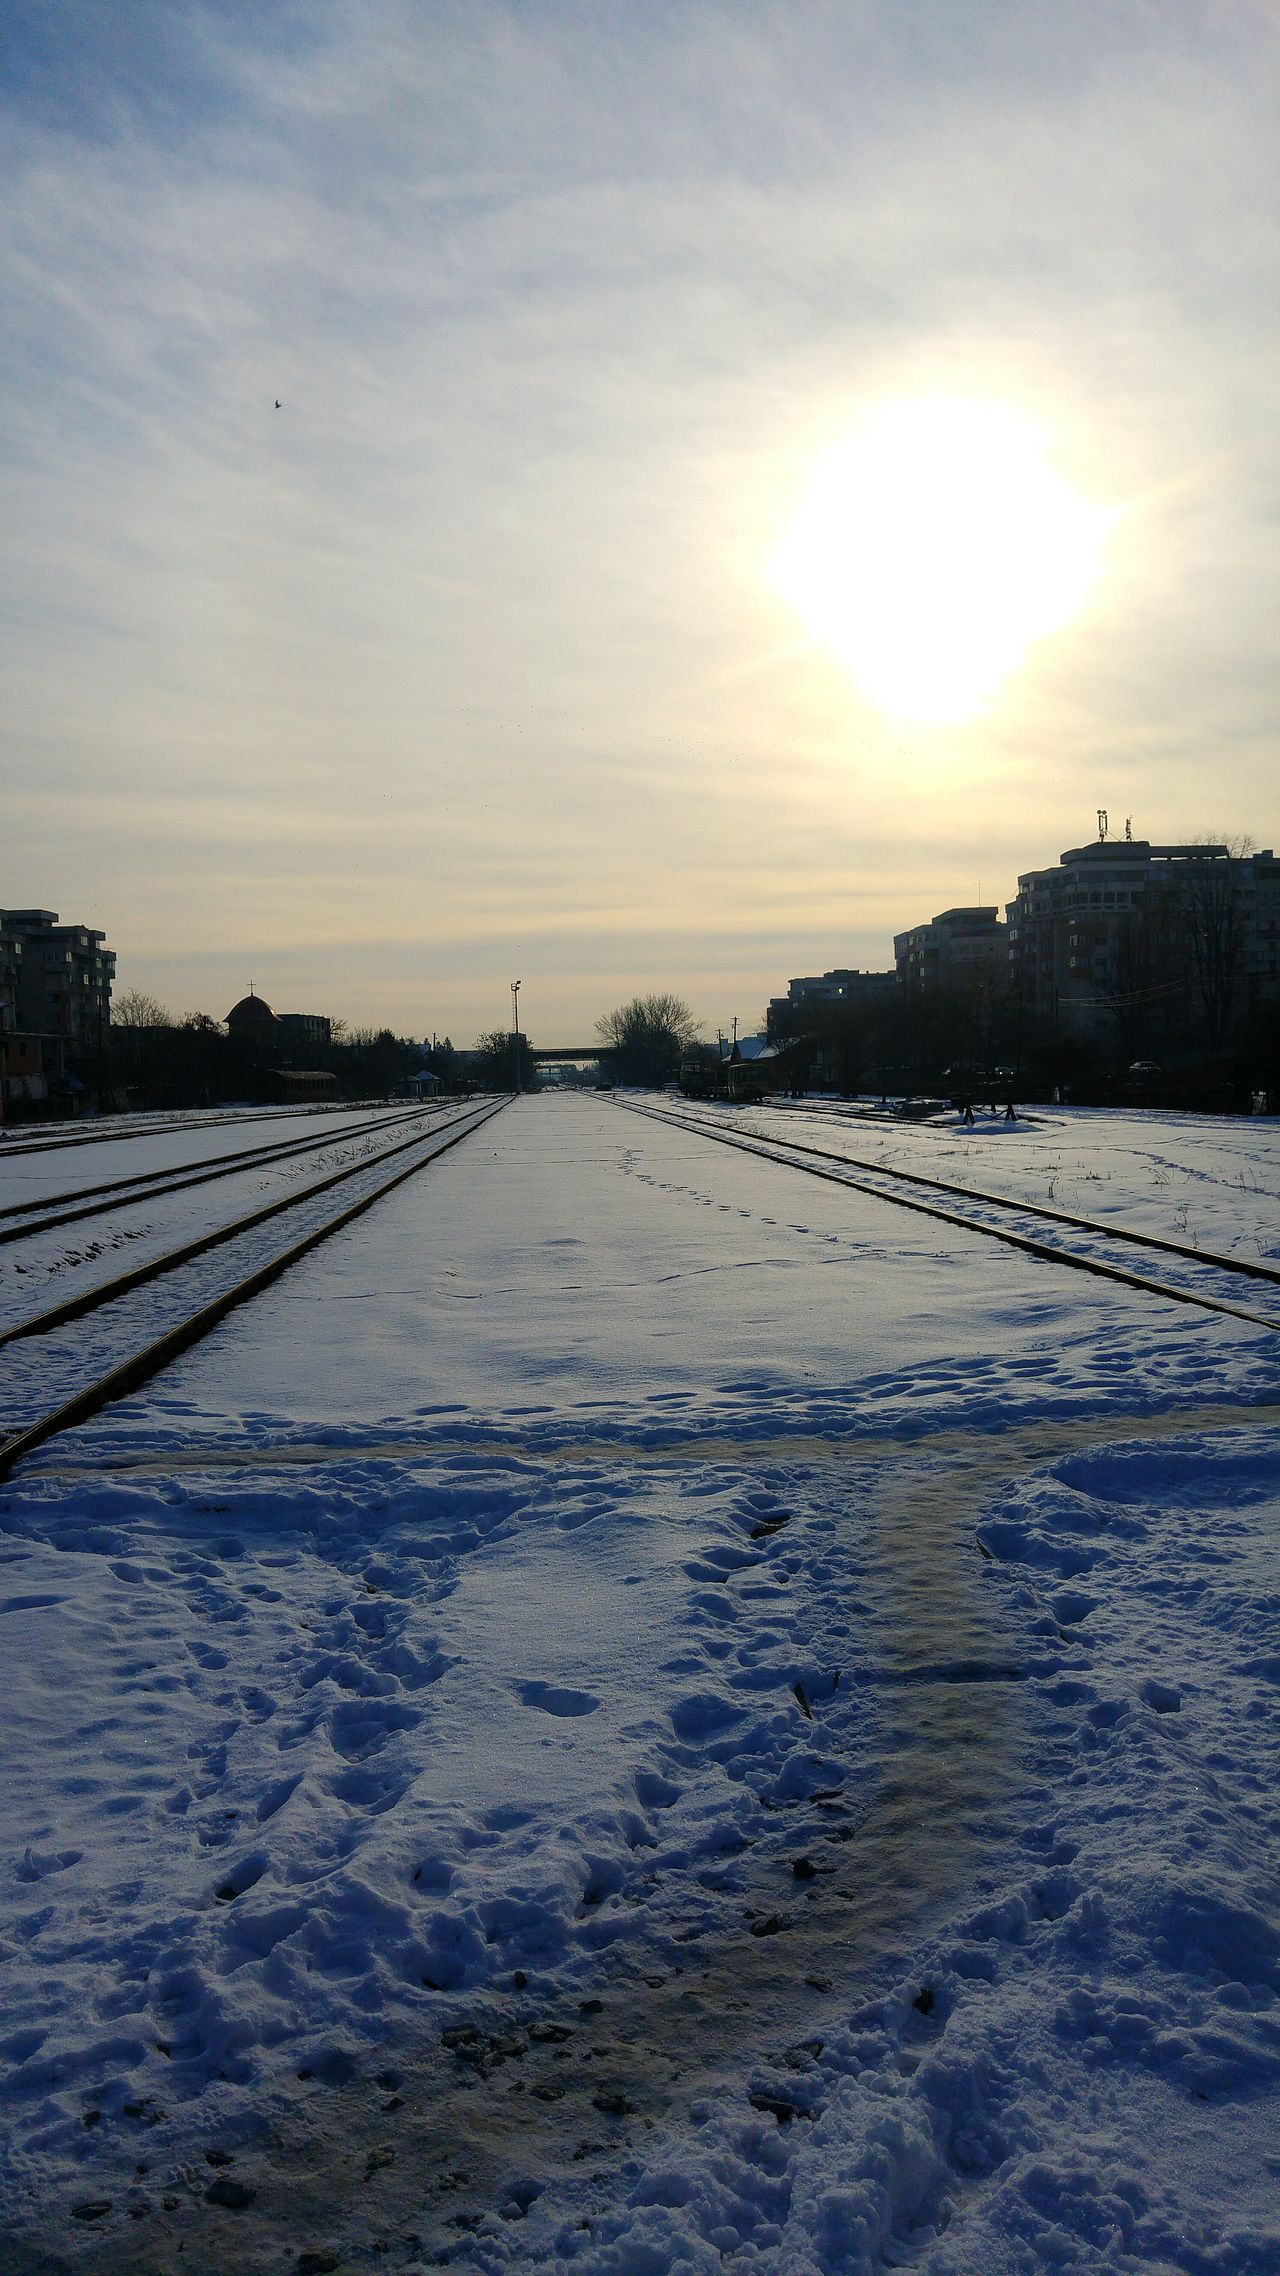 Cold Temperature Train Tracks Train Ride Winterdays ❄ Toocoldoutside Trainplatform Train Station Snow Covered